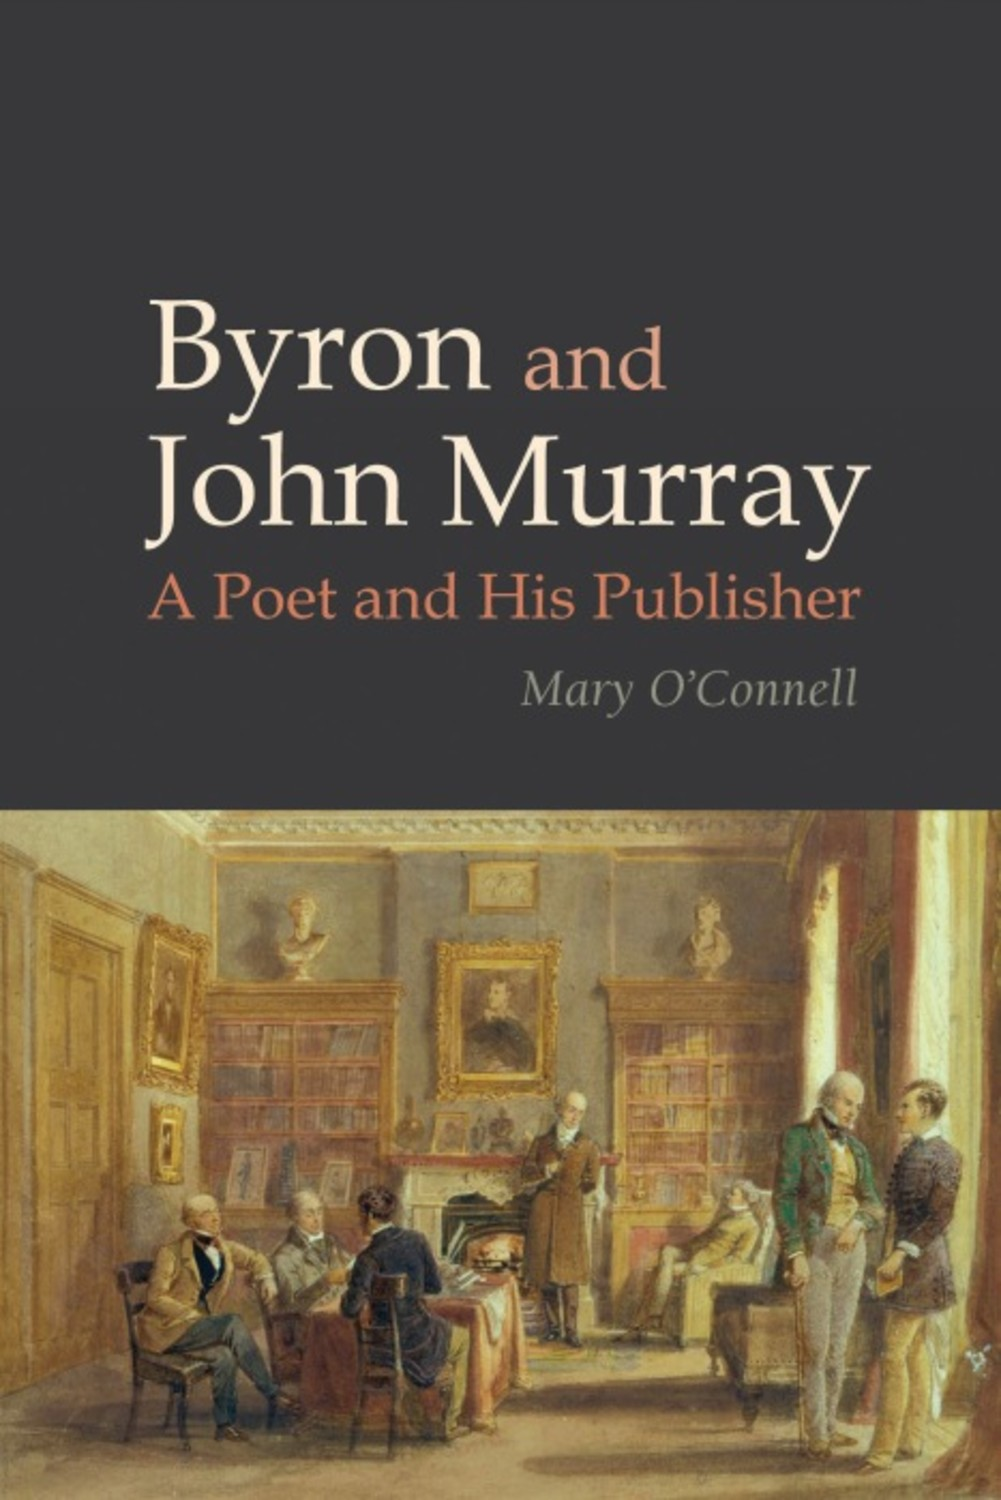 Byron and John Murray